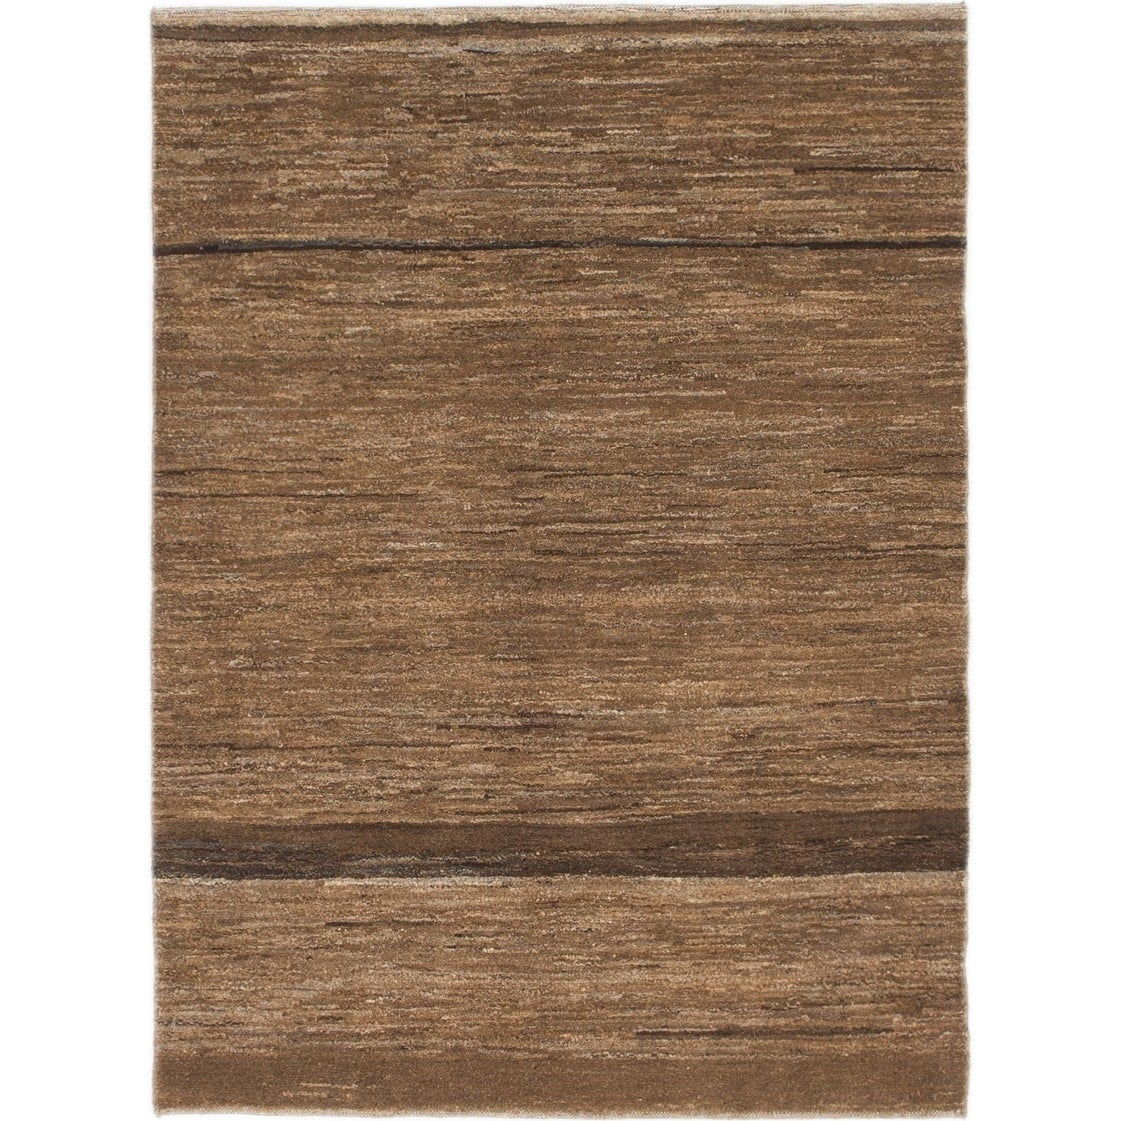 Hand Knotted Kashkuli Gabbeh Wool Area Rug - 3 4 x 4 7 (Brown - 3 4 x 4 7)